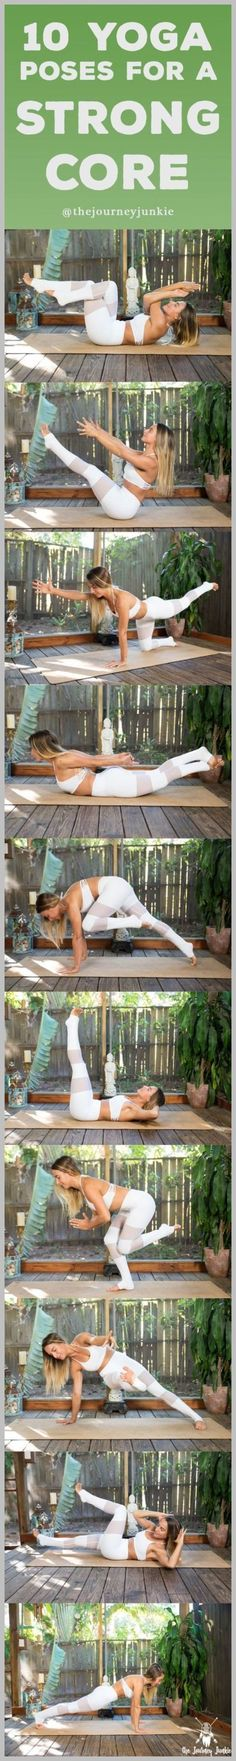 10 Yoga Poses for a Strong Core | Posted By: NewHowToLoseBellyFat.com